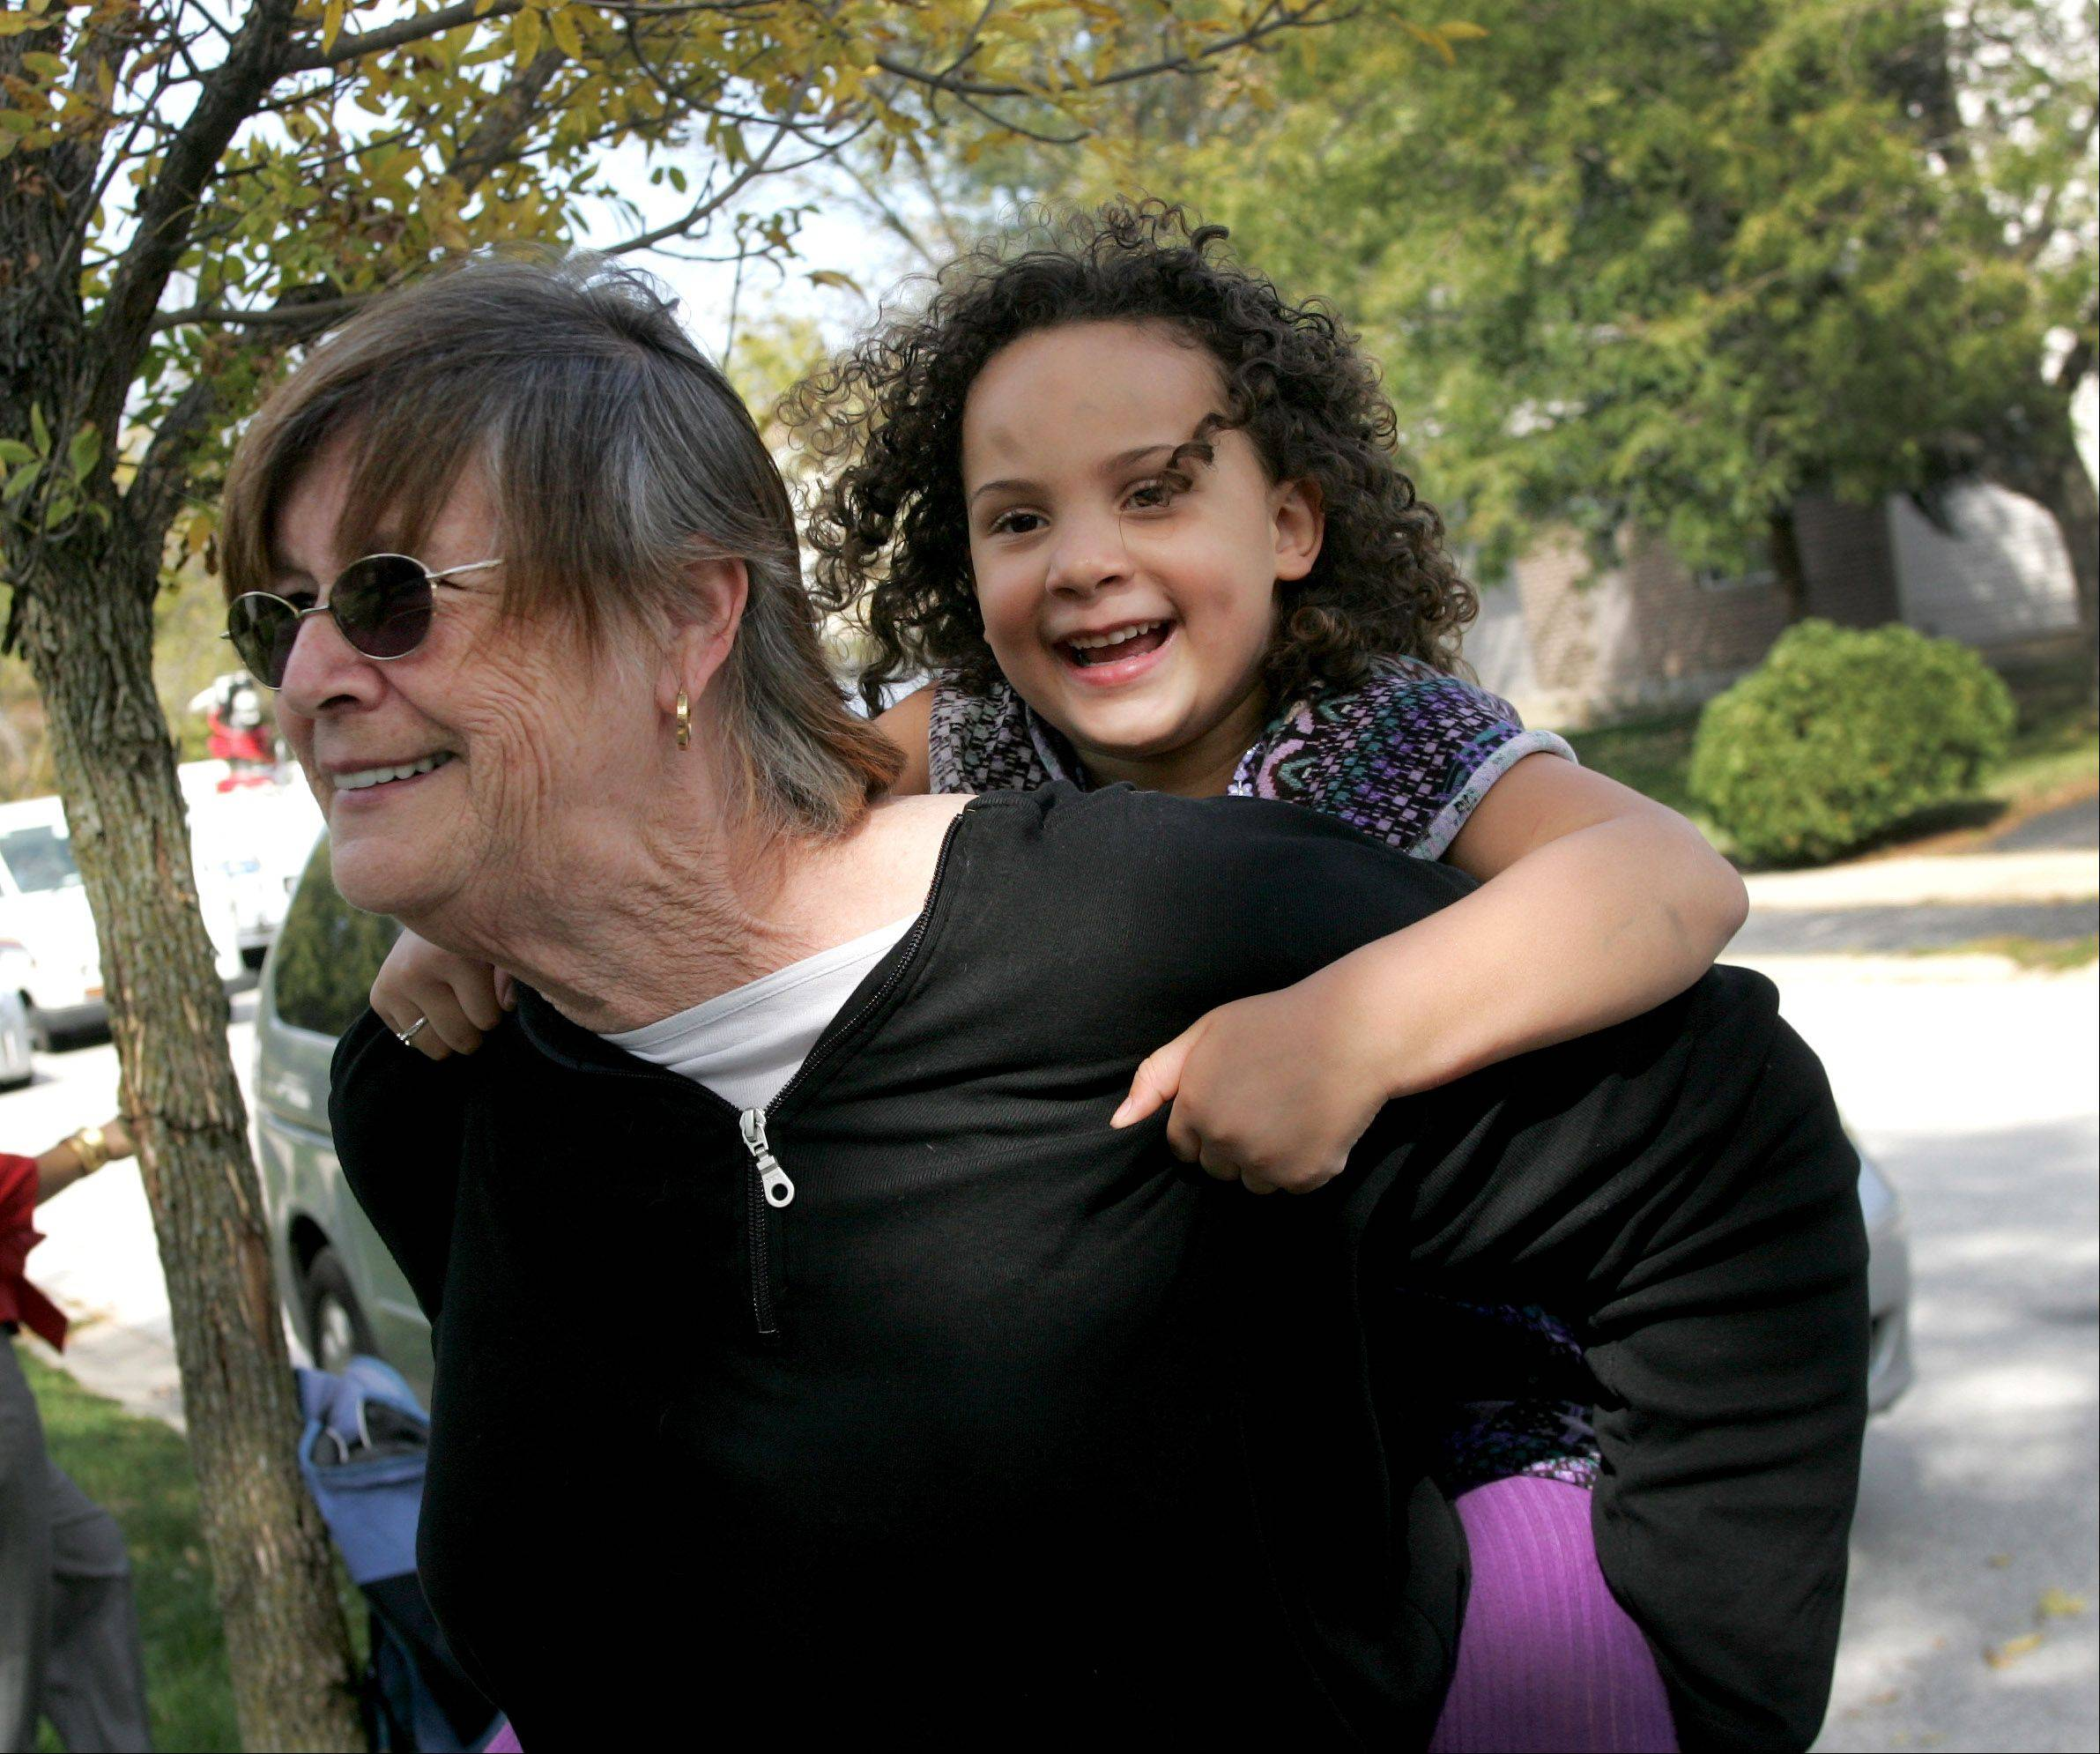 "Livia Jensen, 4, gets a piggyback ride from her mother's friend, Dorothy Anderson of Naperville, whom Livia calls ""Grandma."" Livia helped get medical care for her mother, Diana Jensen, by calling 911 Sunday when family friends like Anderson were not available."